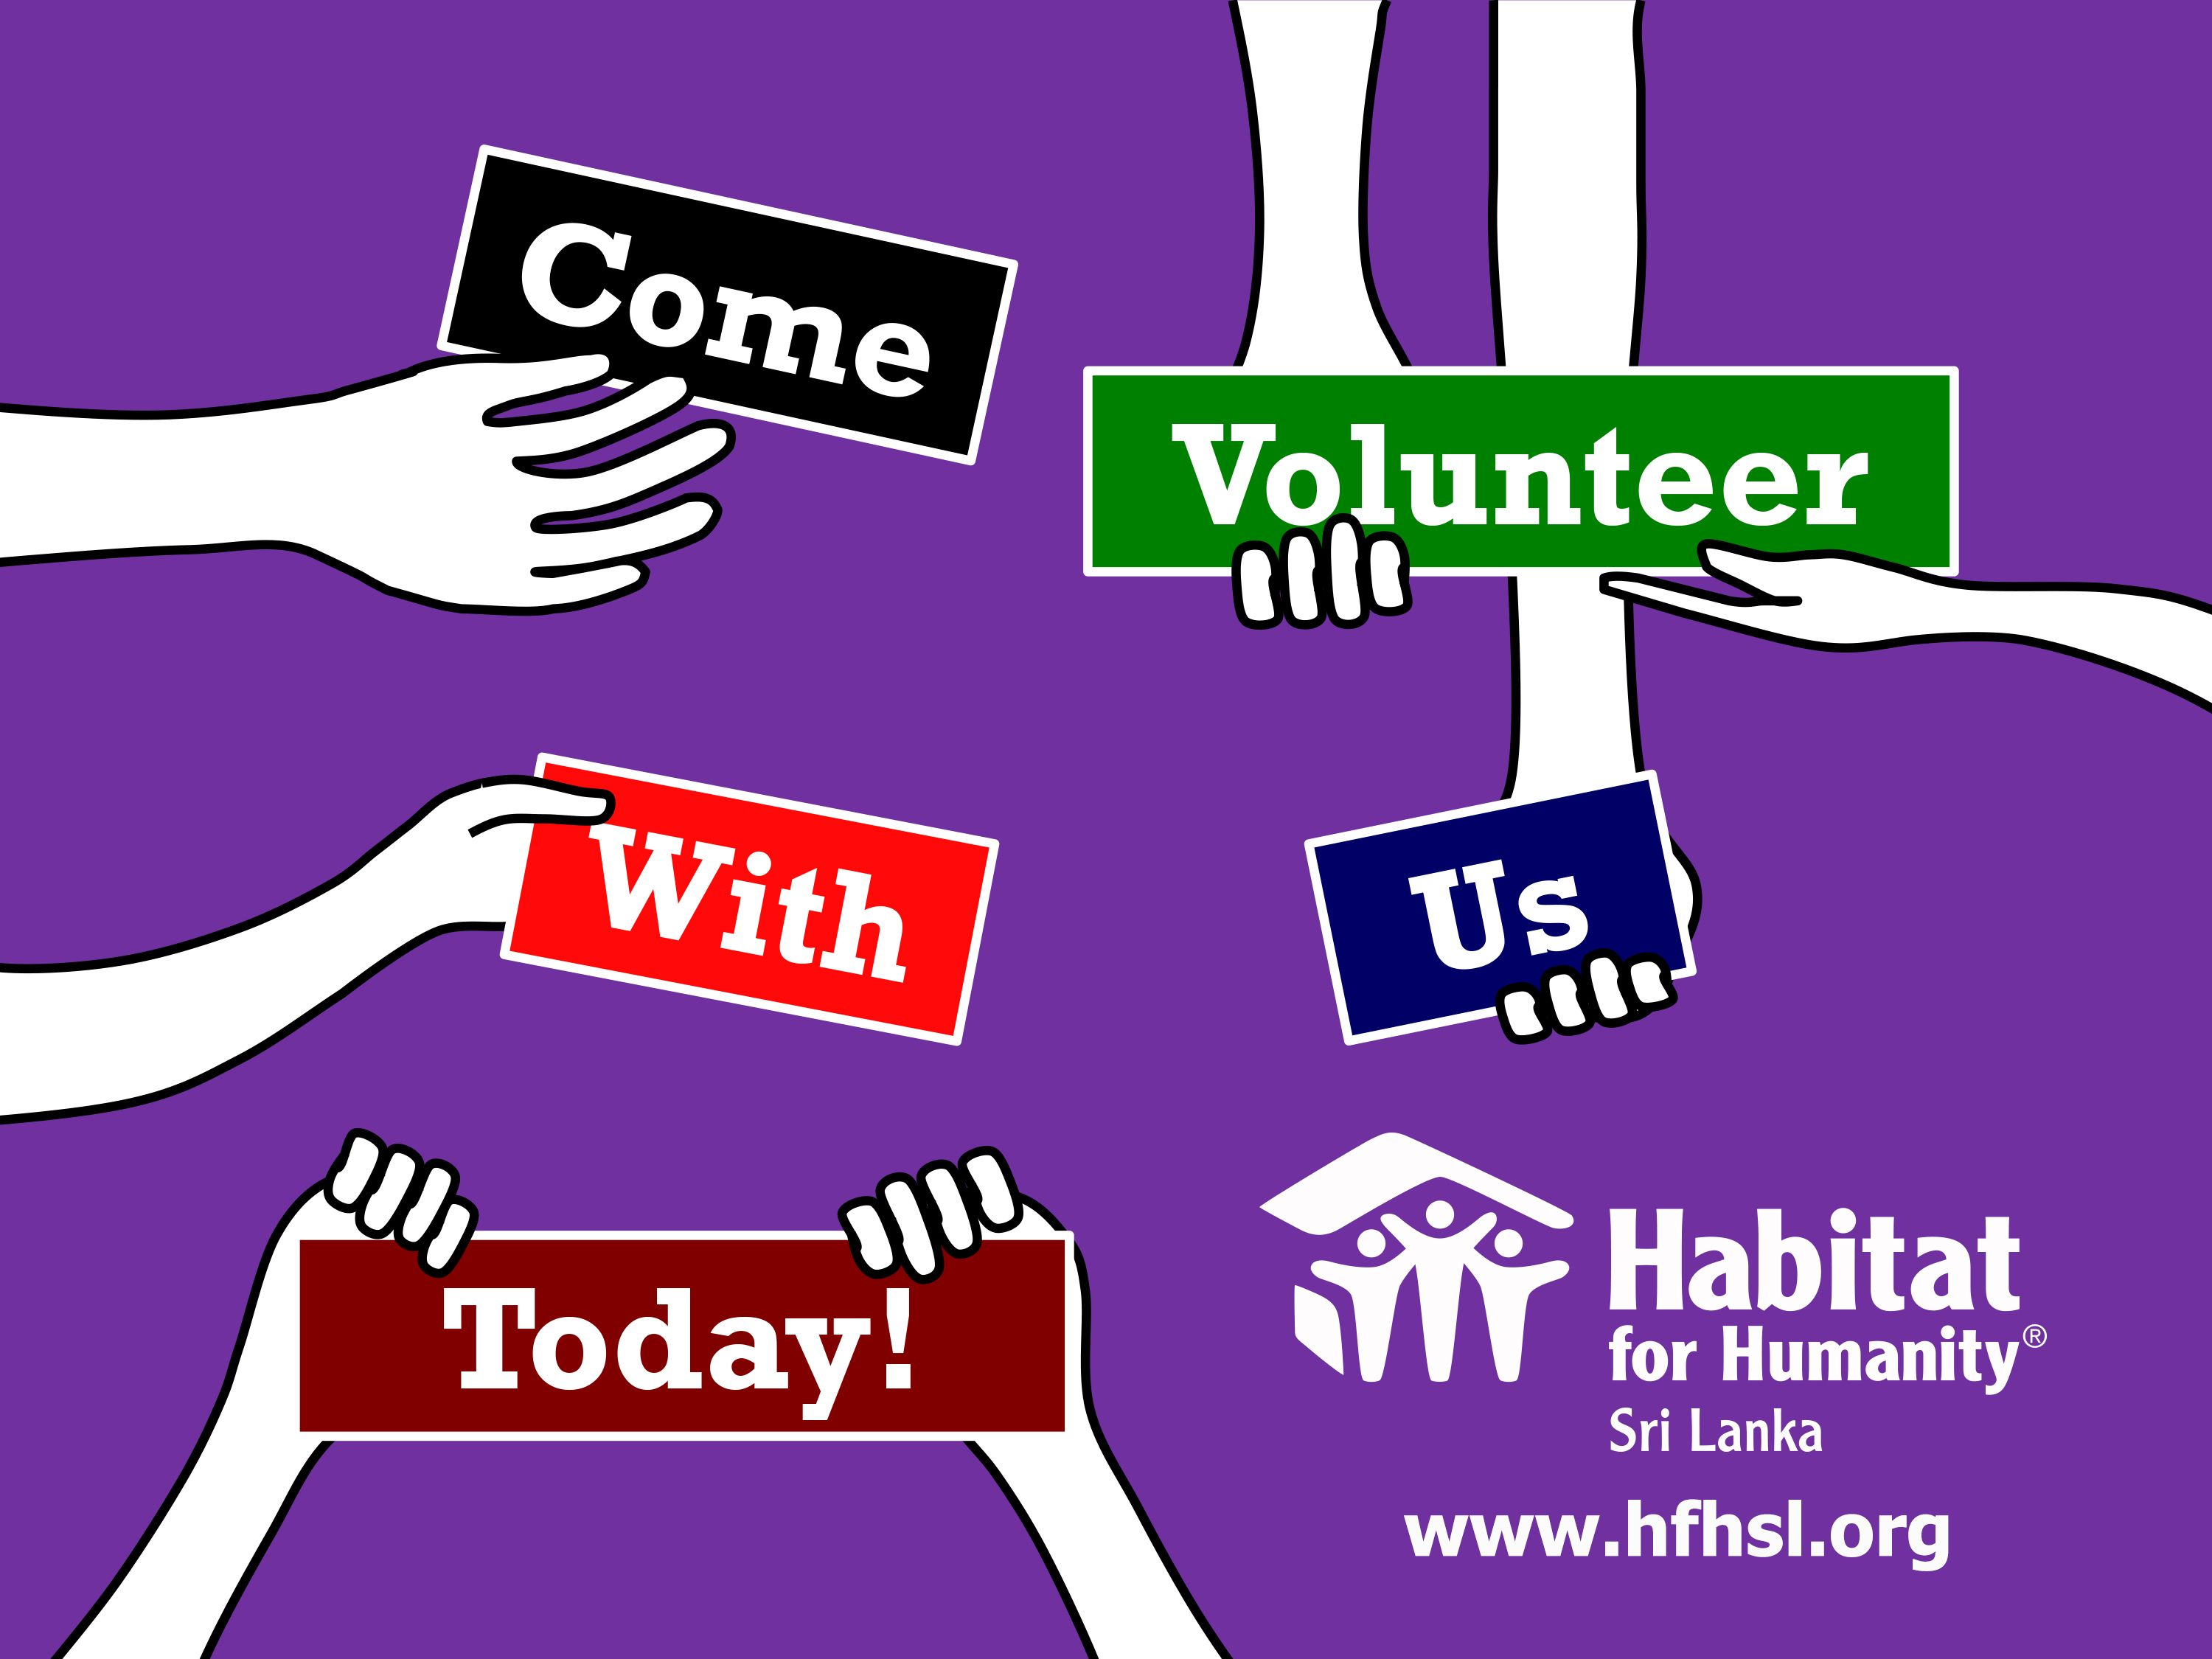 Come volunteer with us toady!!